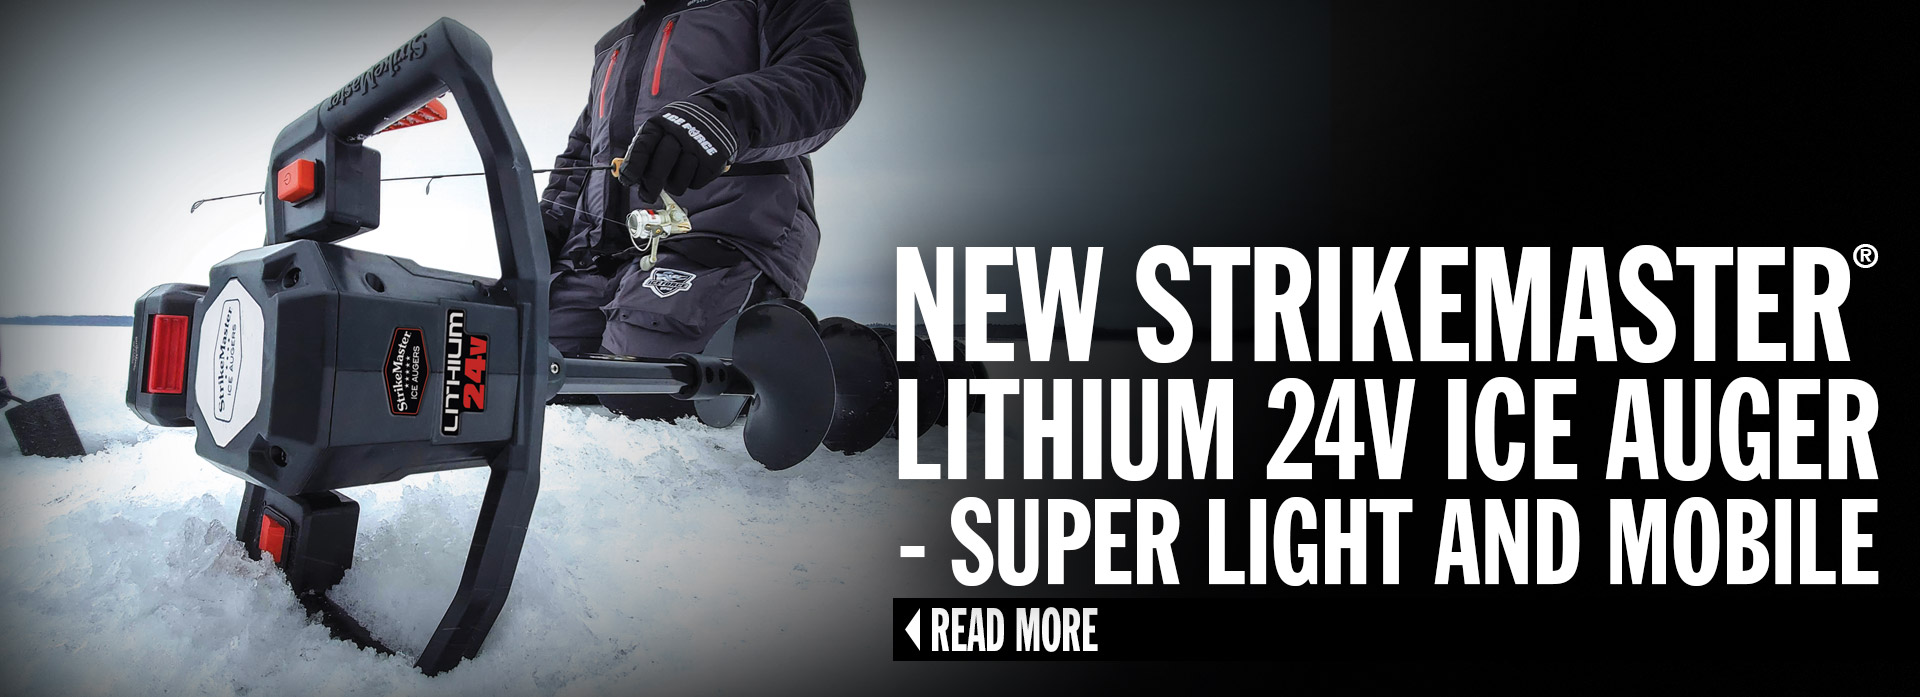 New StrikeMaster® Lithium 24v Ice Auger - Super Light and Mobile